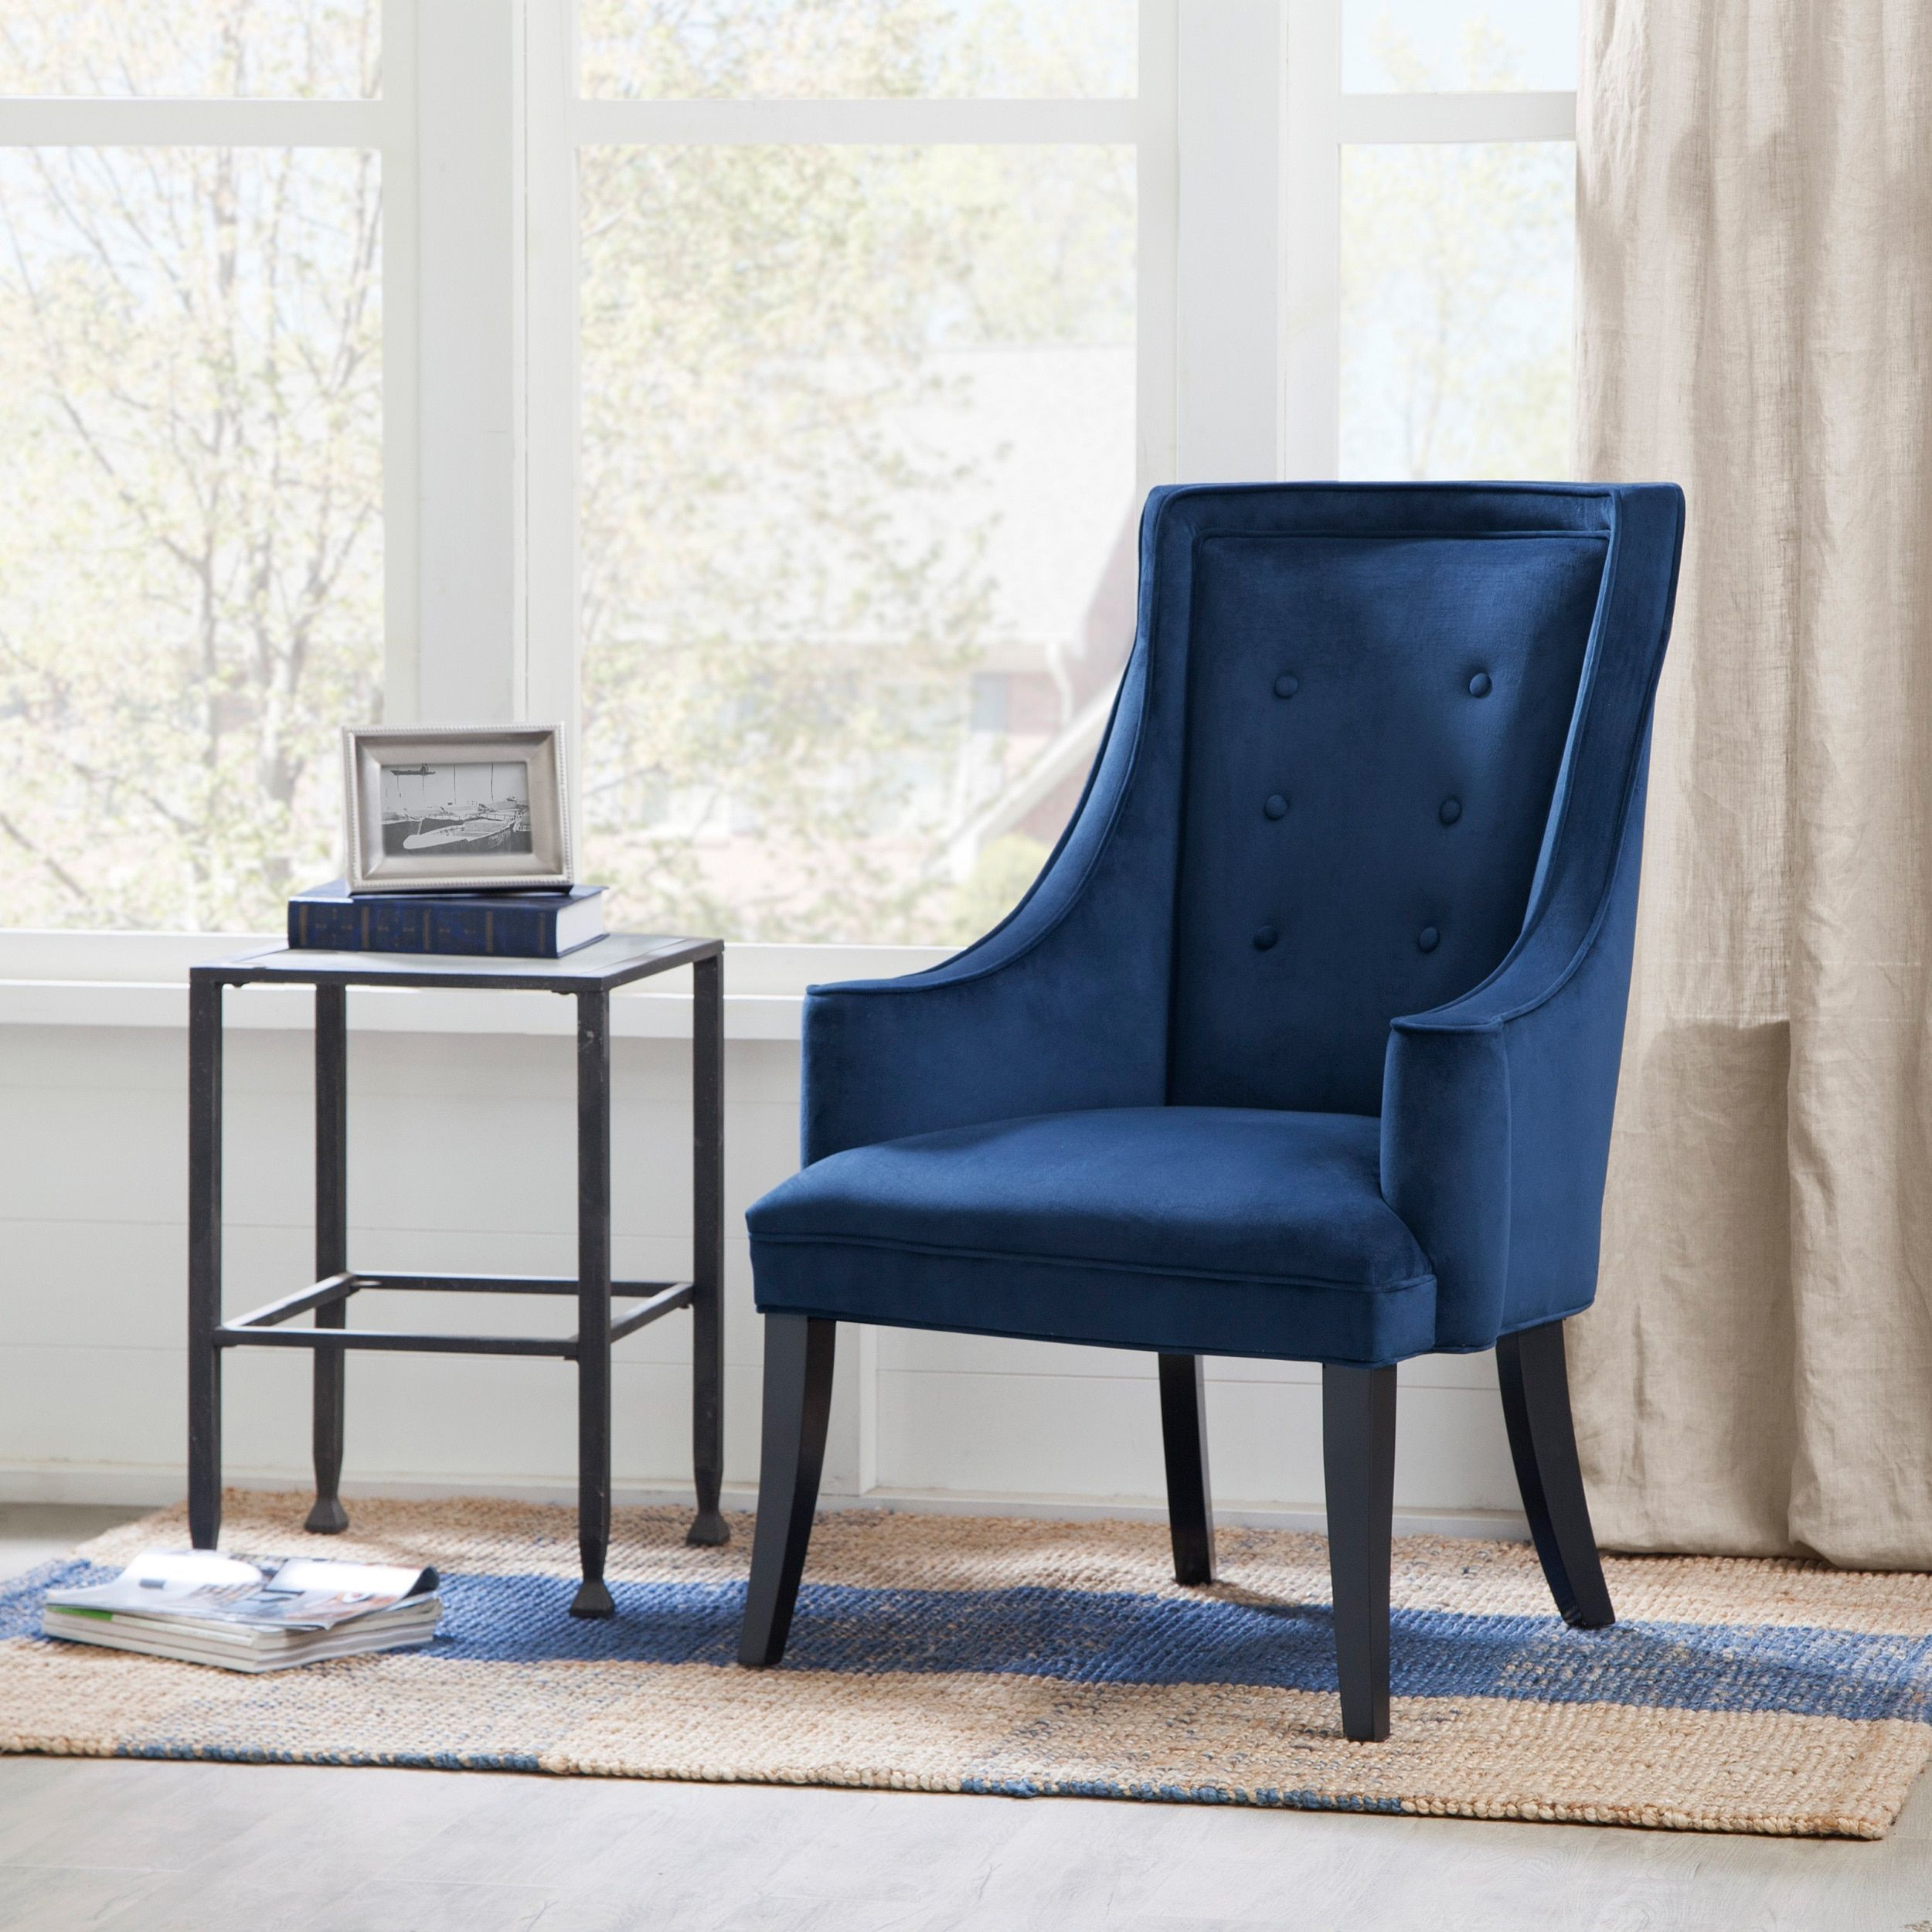 Murano Navy Accent Chair Navy accent chair Living room chairs